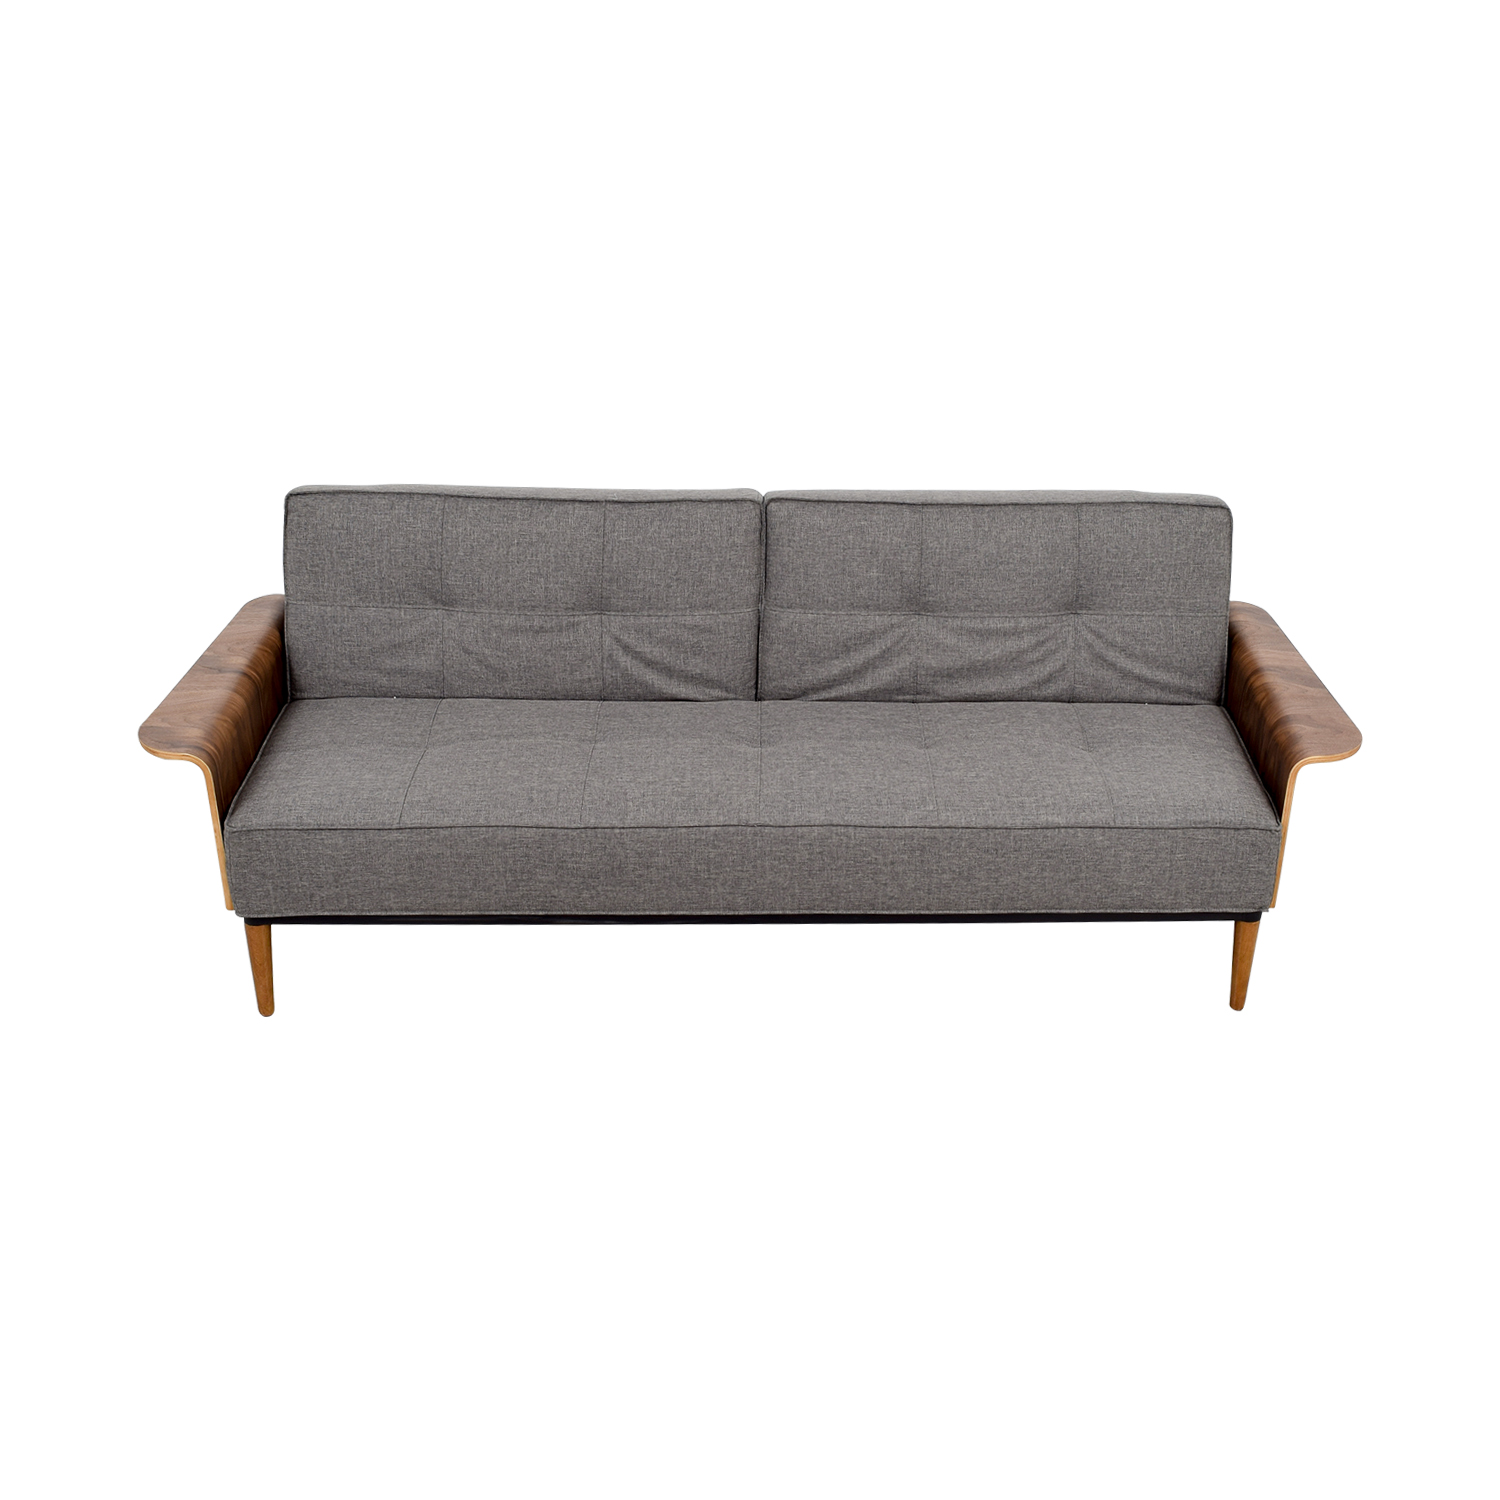 Marvelous Shop Inmod Inmod Bjorg Tufted Dark Grey Sofabed Online